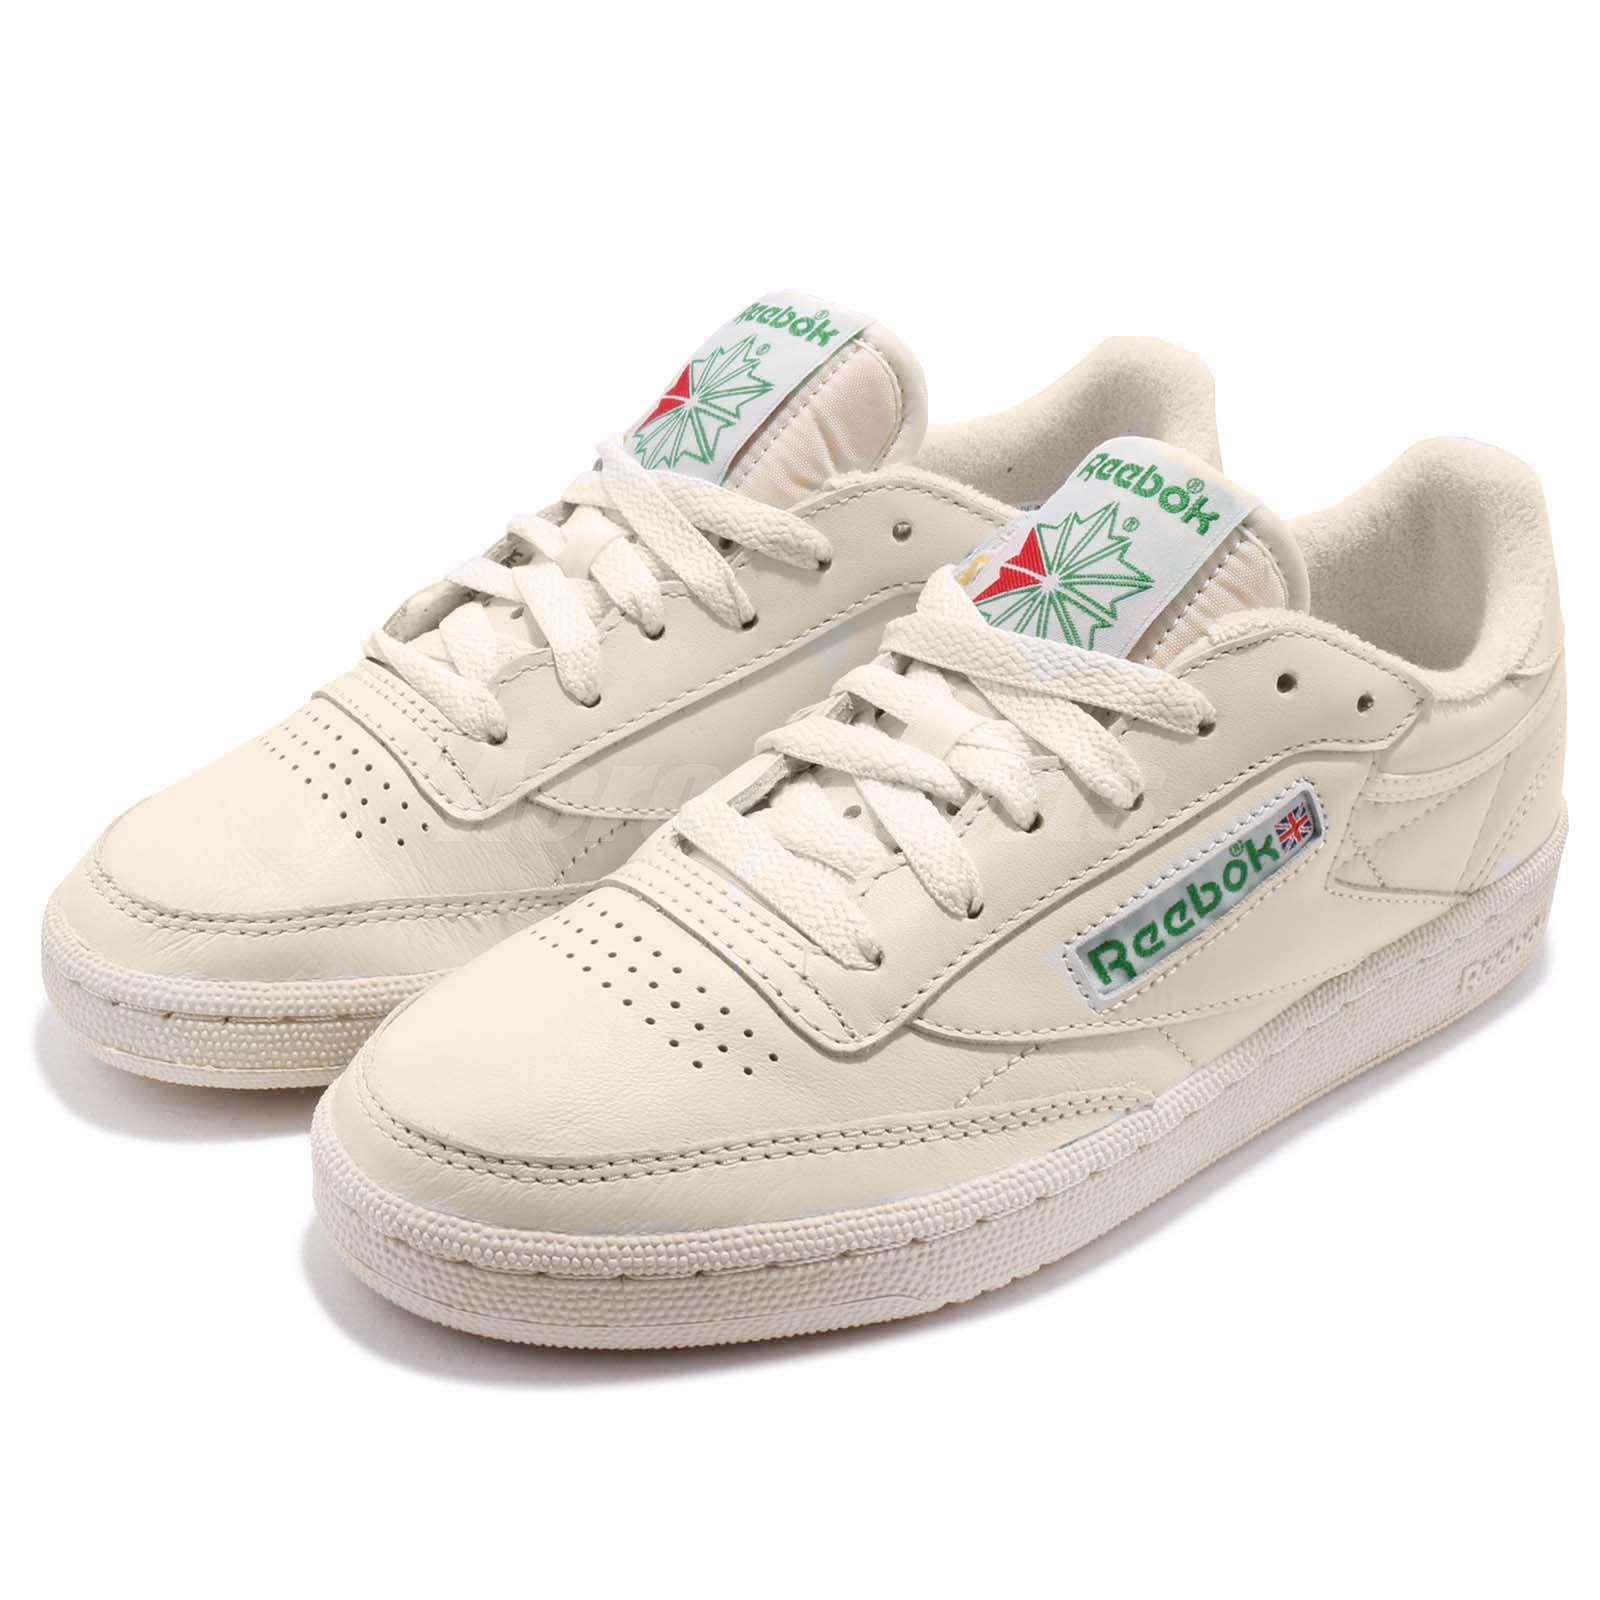 reebok club c 85 vintage leather chalk green women shoes. Black Bedroom Furniture Sets. Home Design Ideas